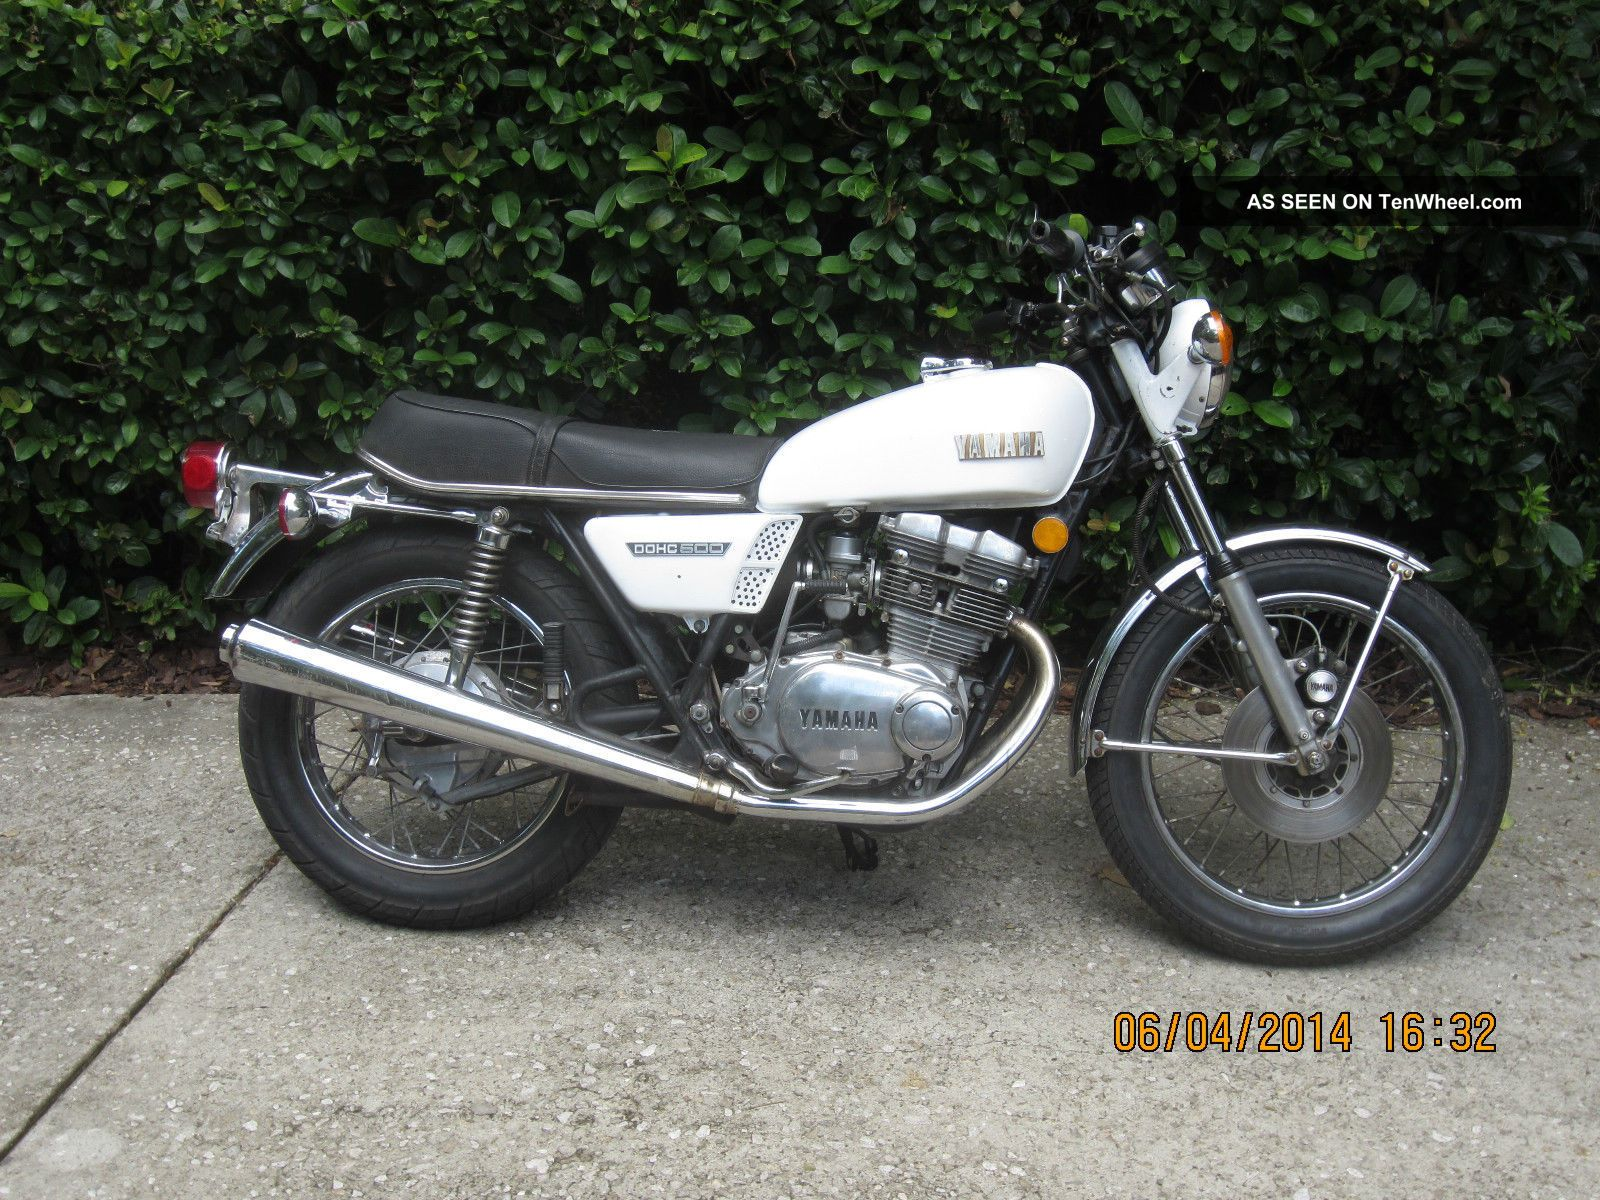 1973 Yamaha Tx 500 Ready To Ride Other photo